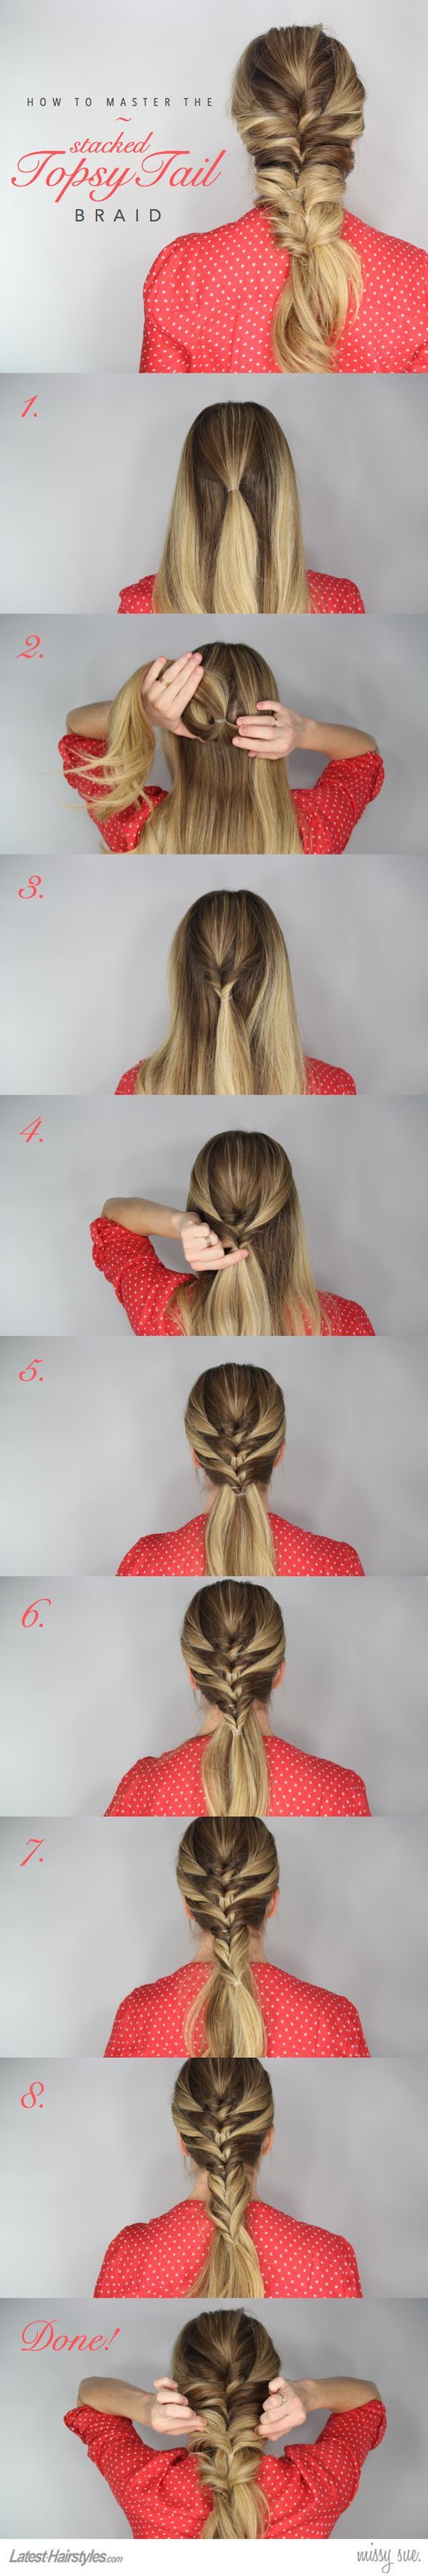 Stacked Topsy Tail Braid Tutorial: